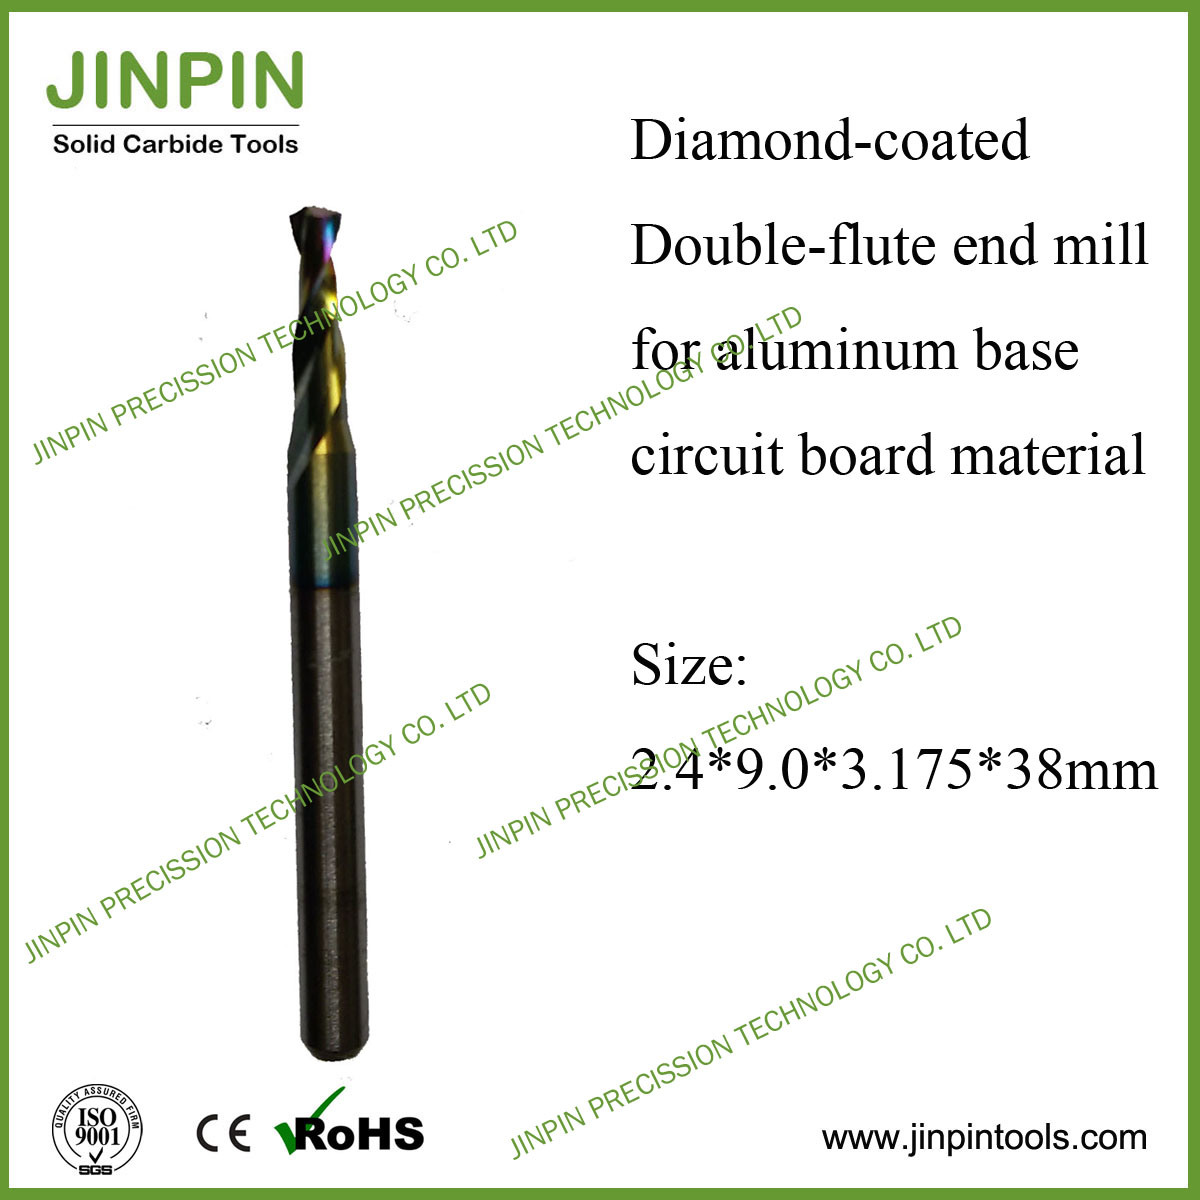 Diamond Coated 2-Flute End Mill for Aluminum Backed Pcbmaterial